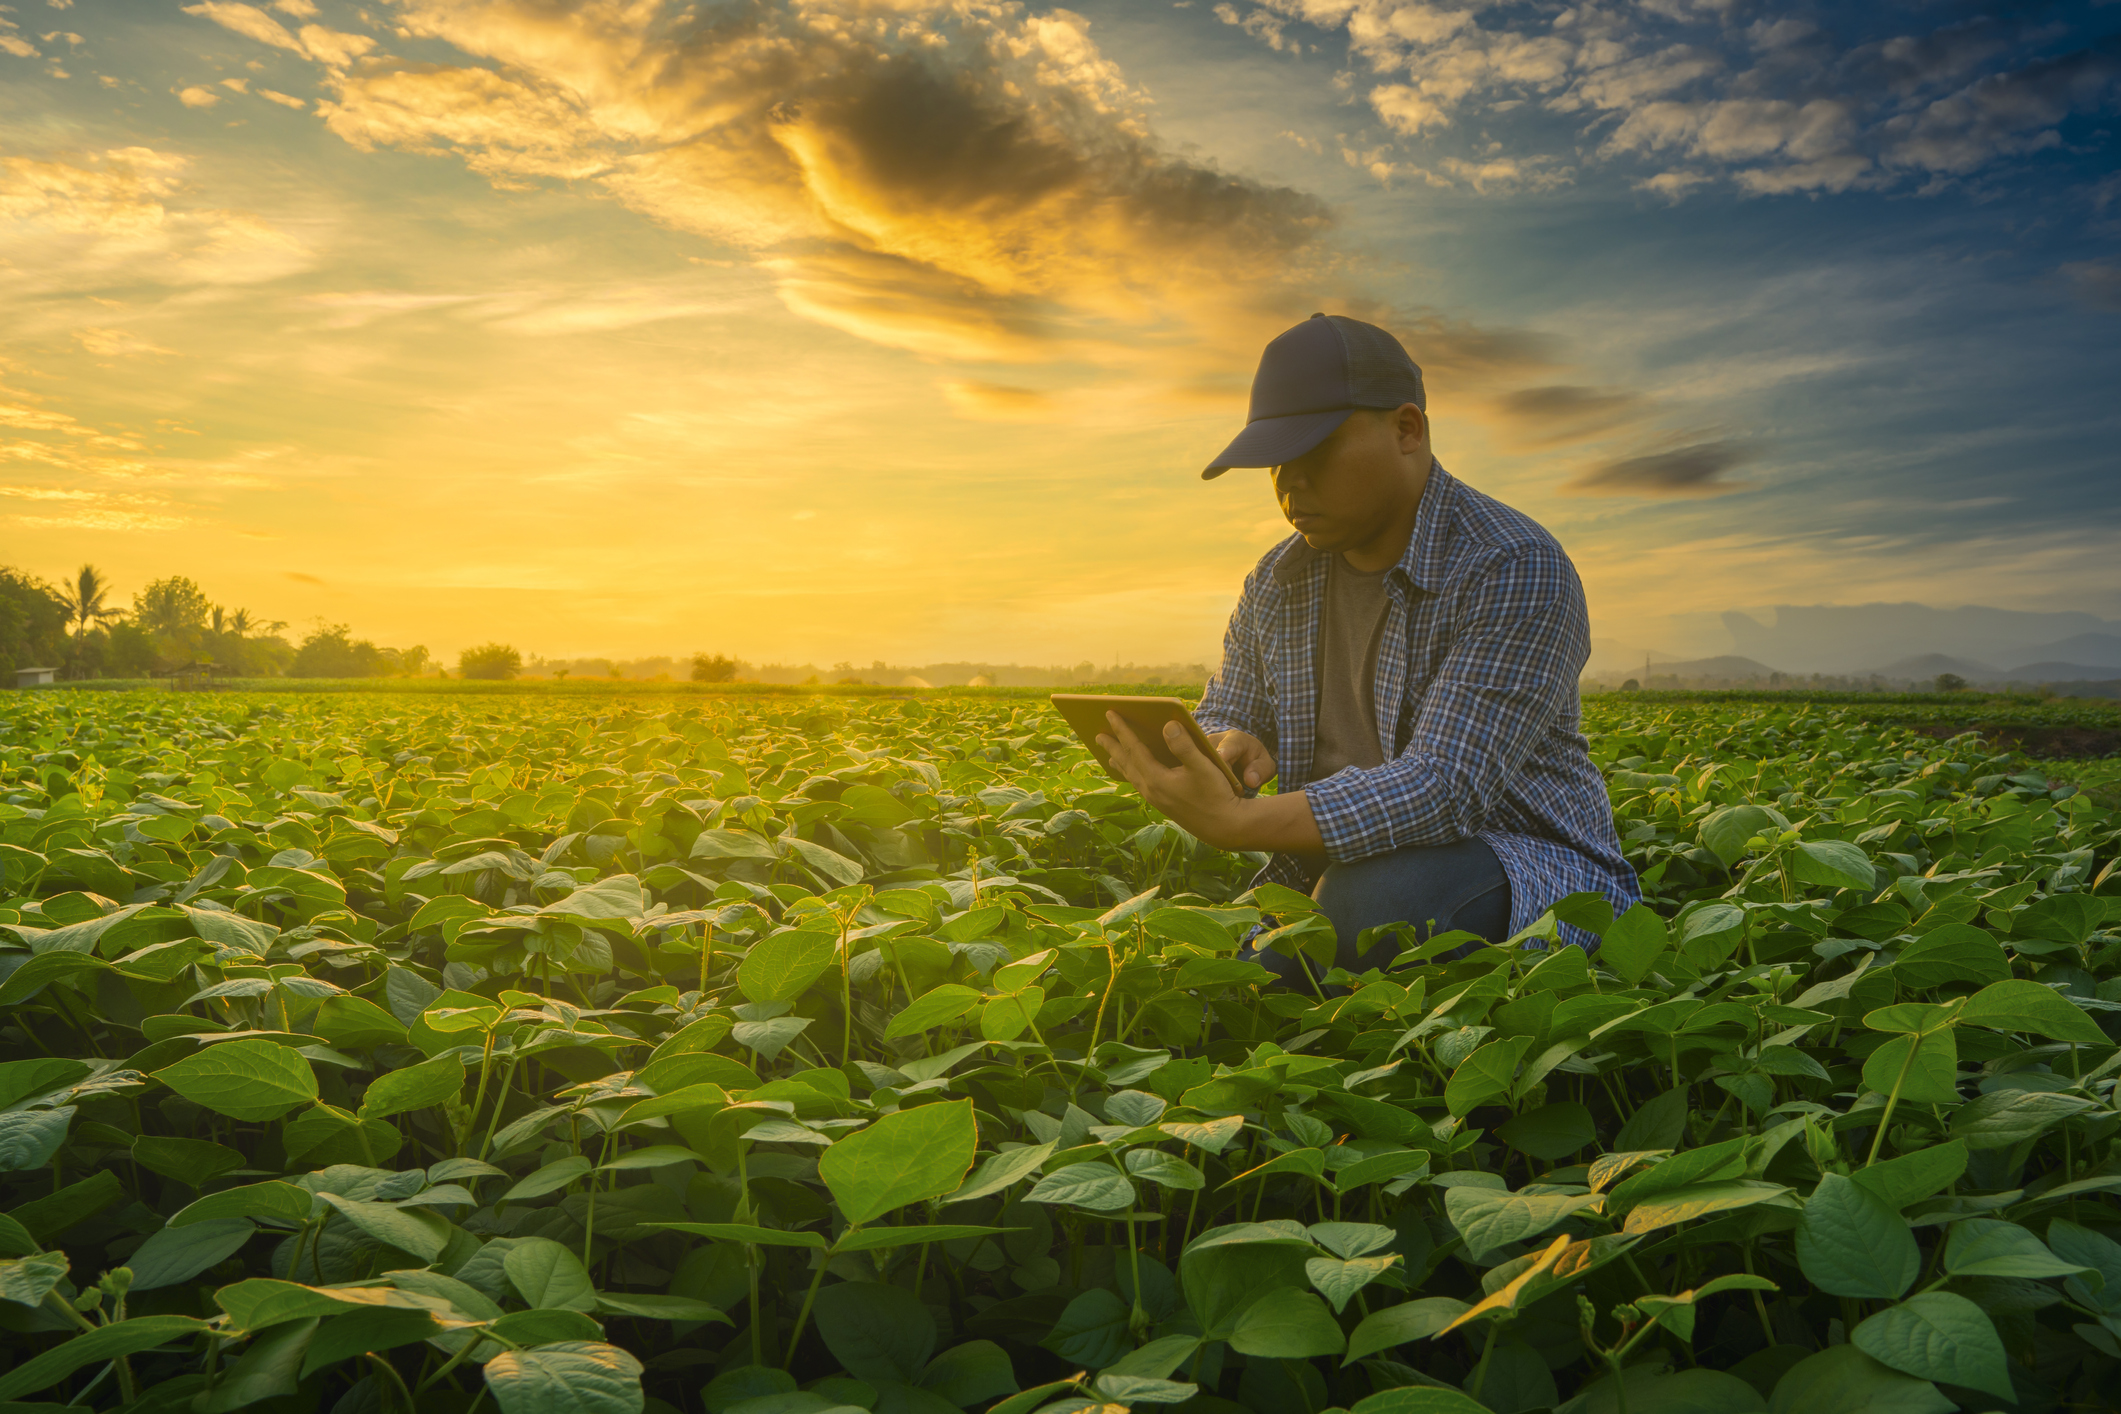 How to leverage innovation and collaboration to build a more sustainable food system.